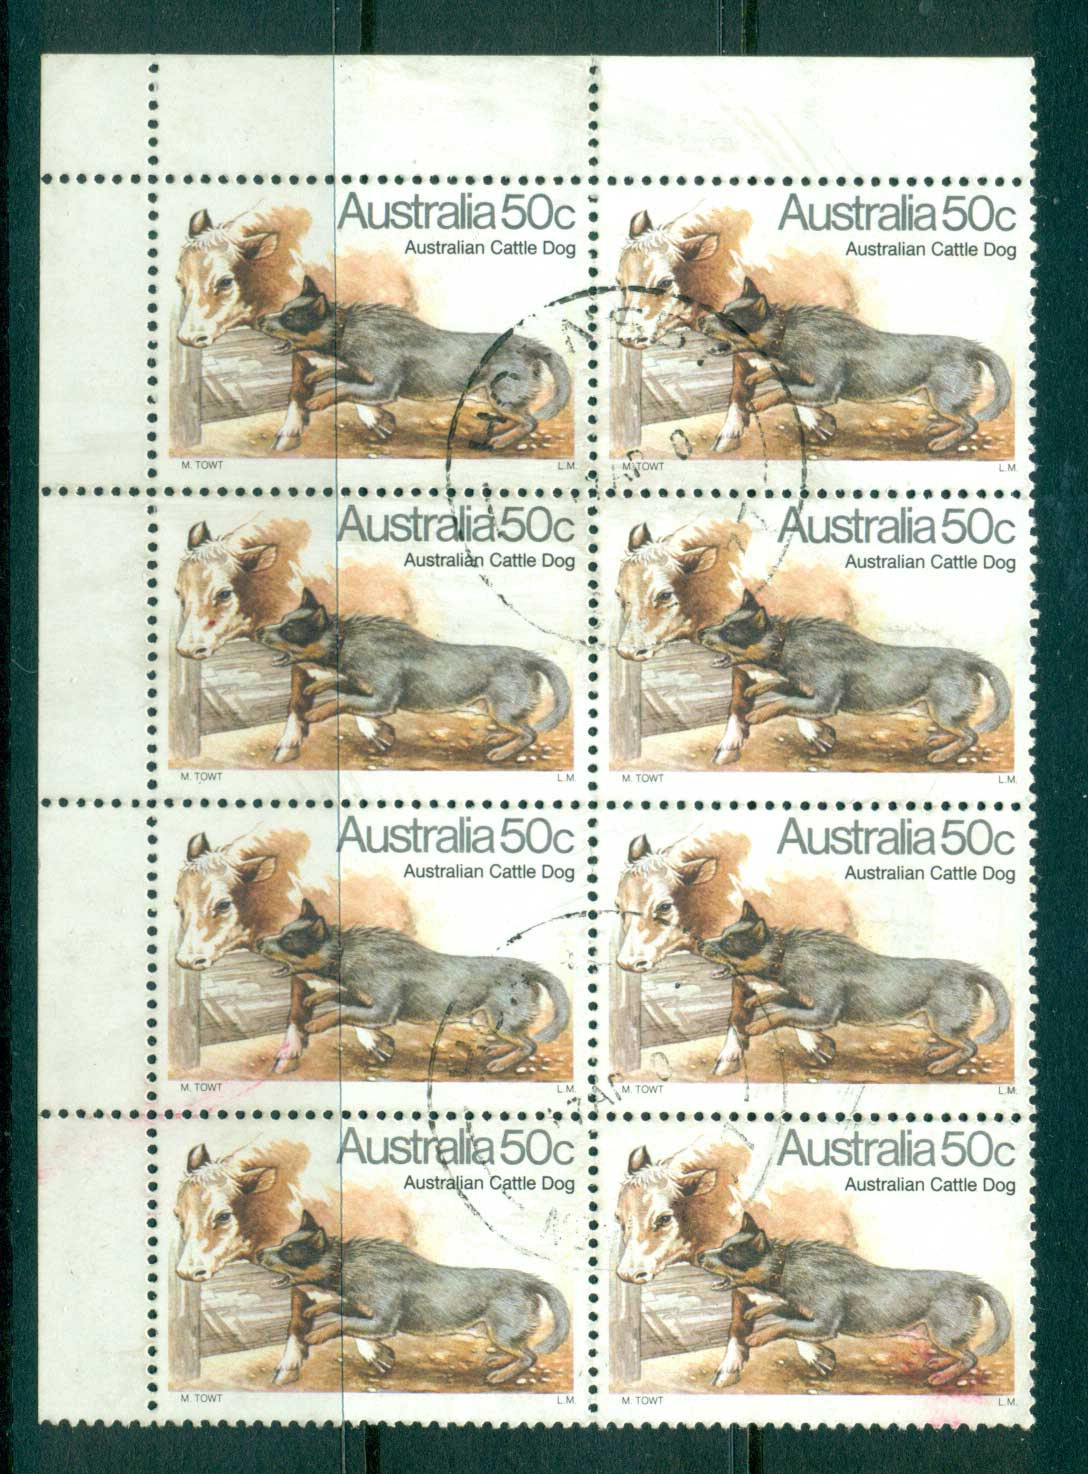 Australia 1980 50c Cattle Dog Blk 8 FU lot33954